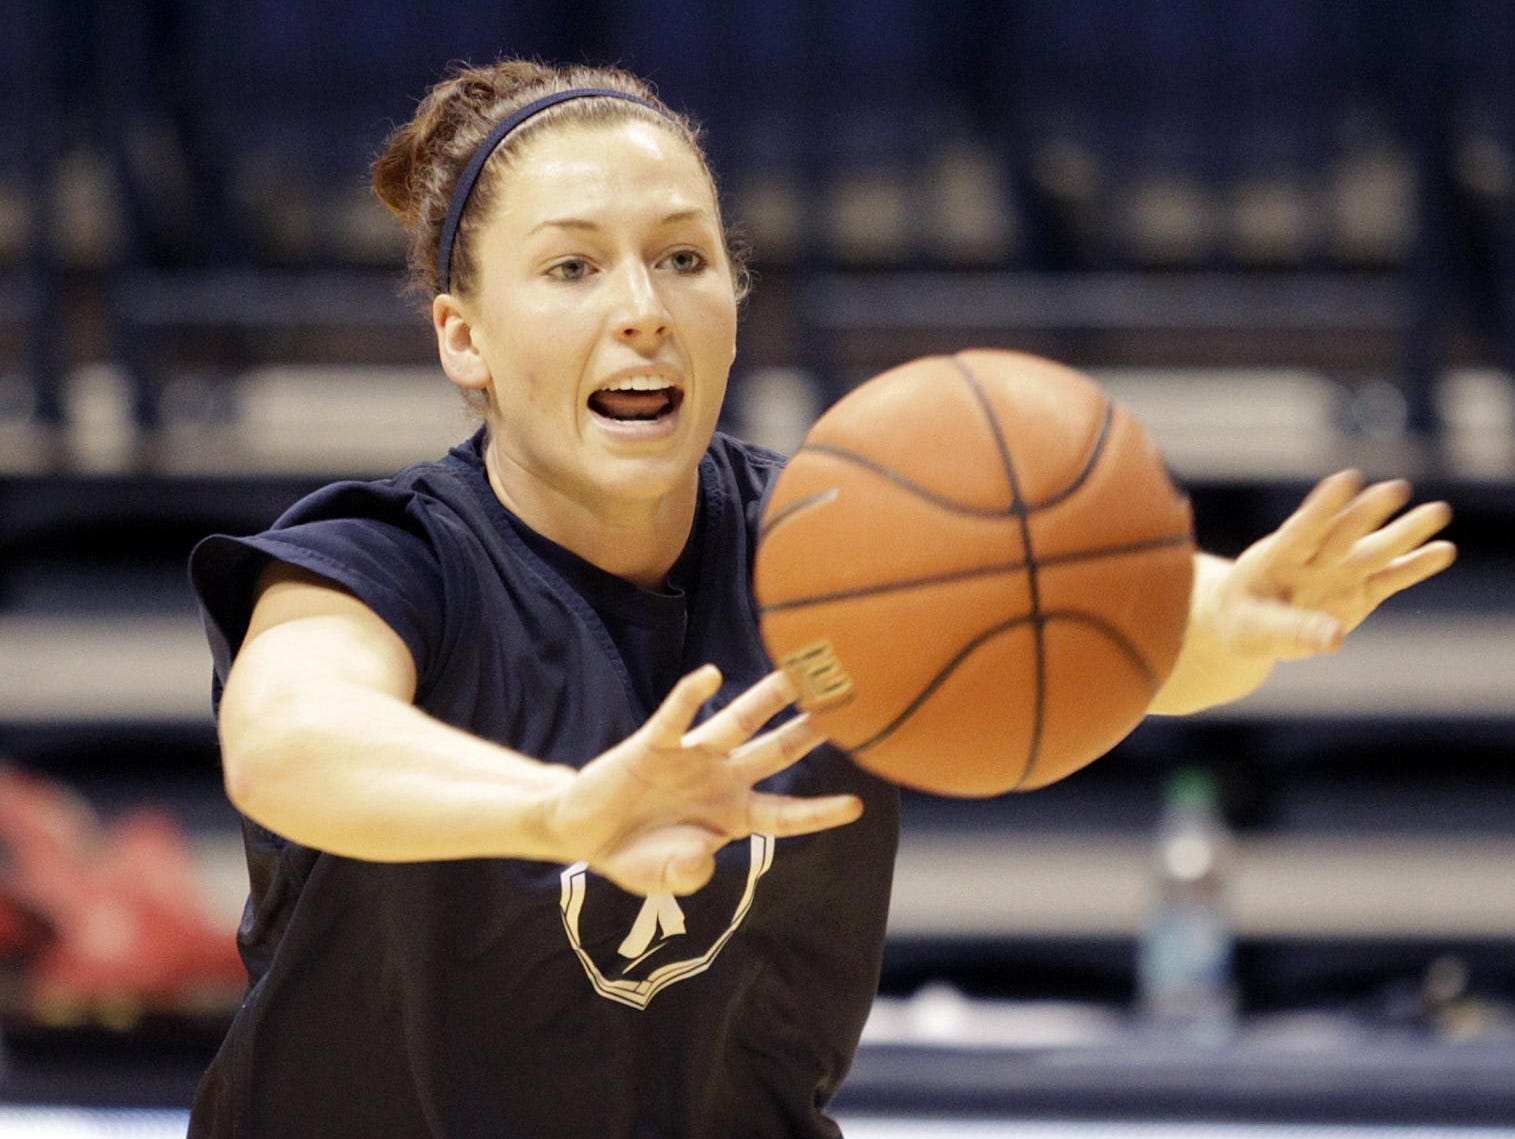 Friday, April 10, Colerain High School announced Ashley Wanninger, shown in a 2012 practice with Xavier University, would return to the Cardinals as the girls' head basketball coach.